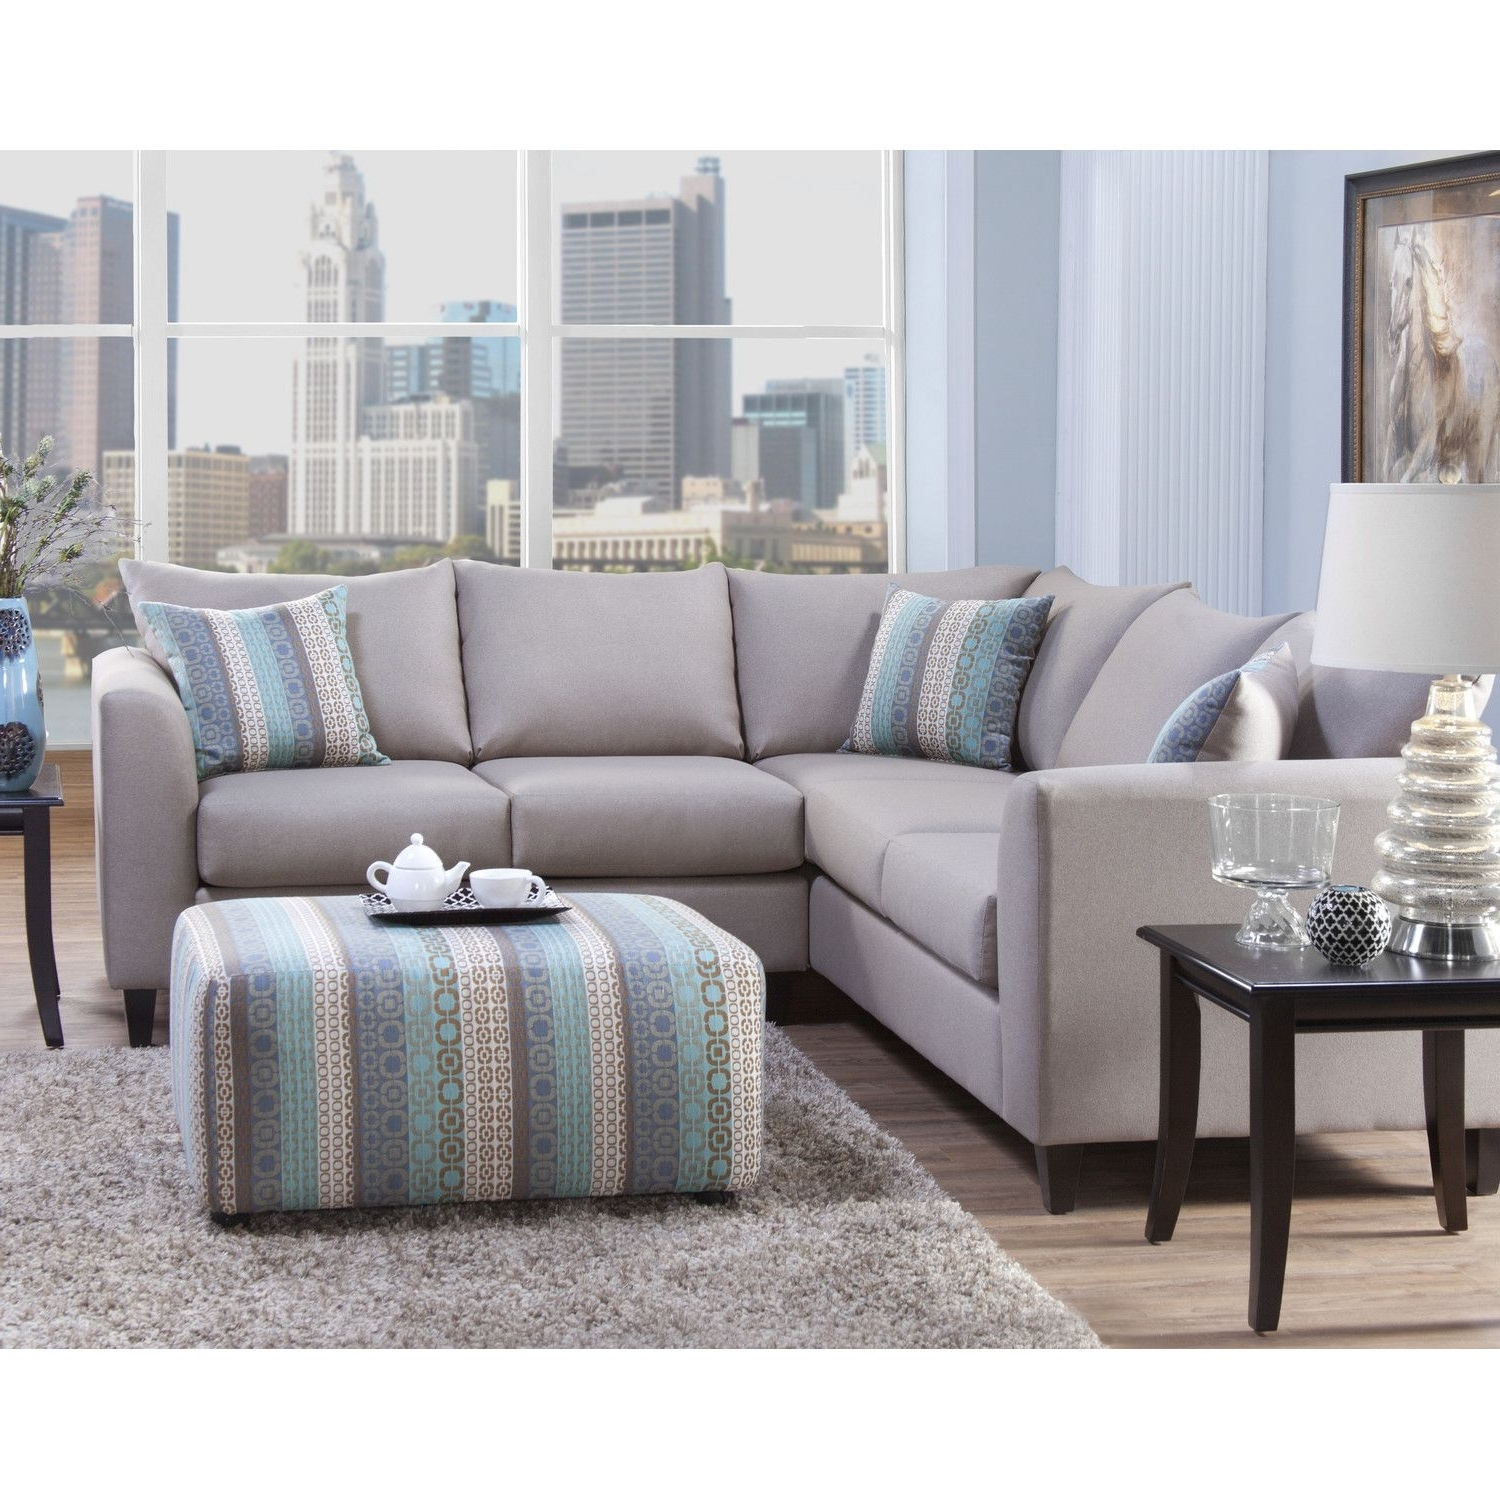 Latest Free Shipping! Shop Wayfair For Serta Upholstery Sectional – Great With Wayfair Sectional Sofas (View 3 of 15)